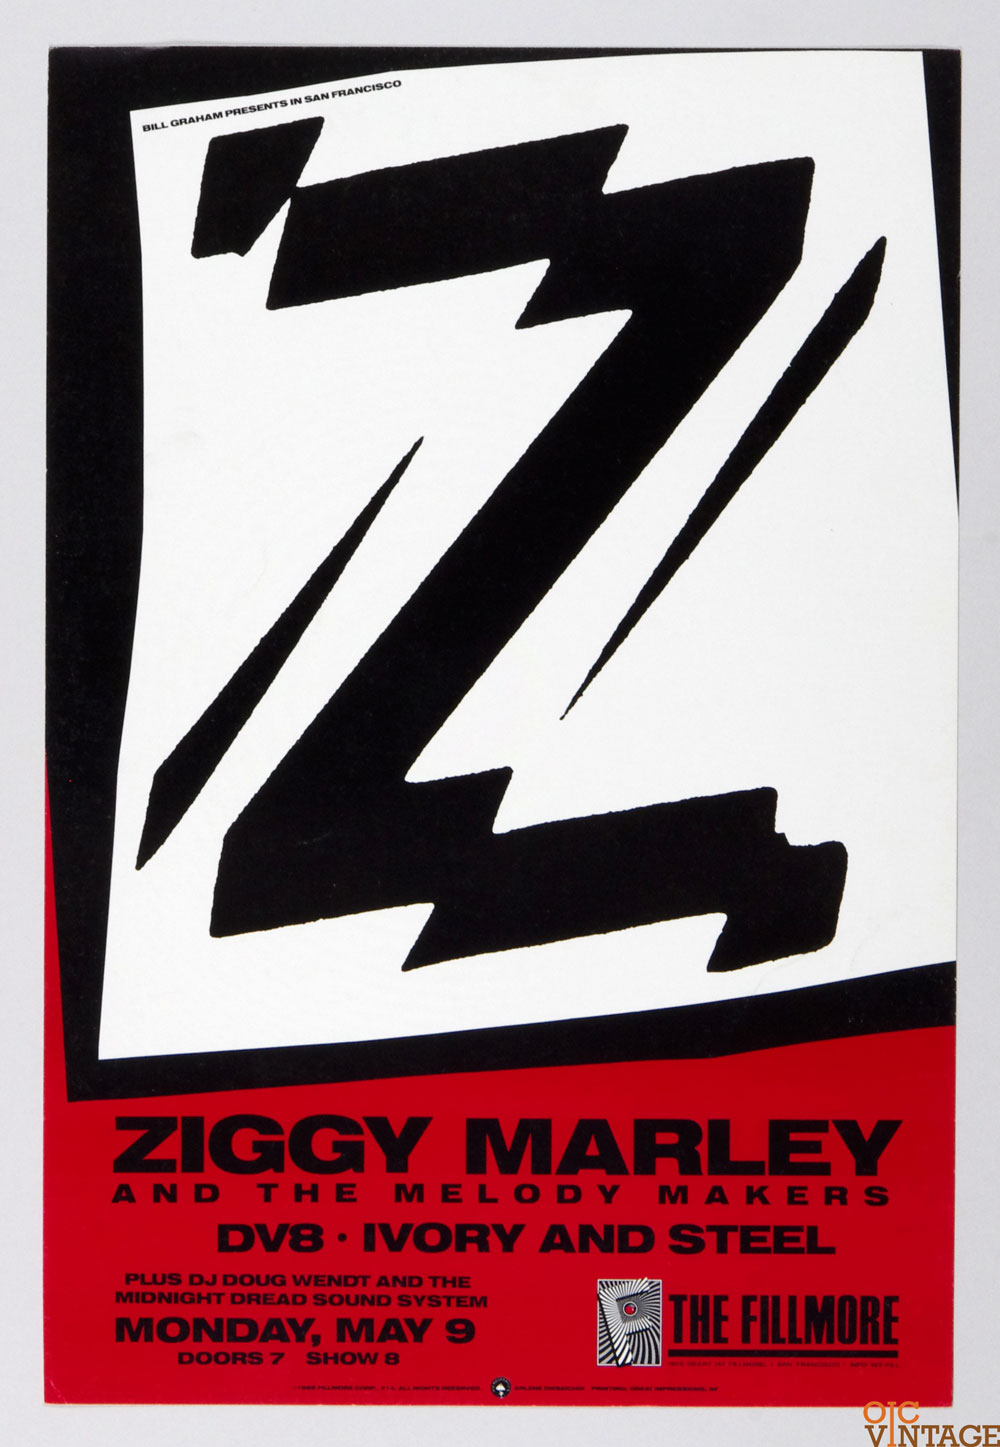 Ziggy Marley DV8 Ivory and Steel Poster 1988 May 9 New Fillmore